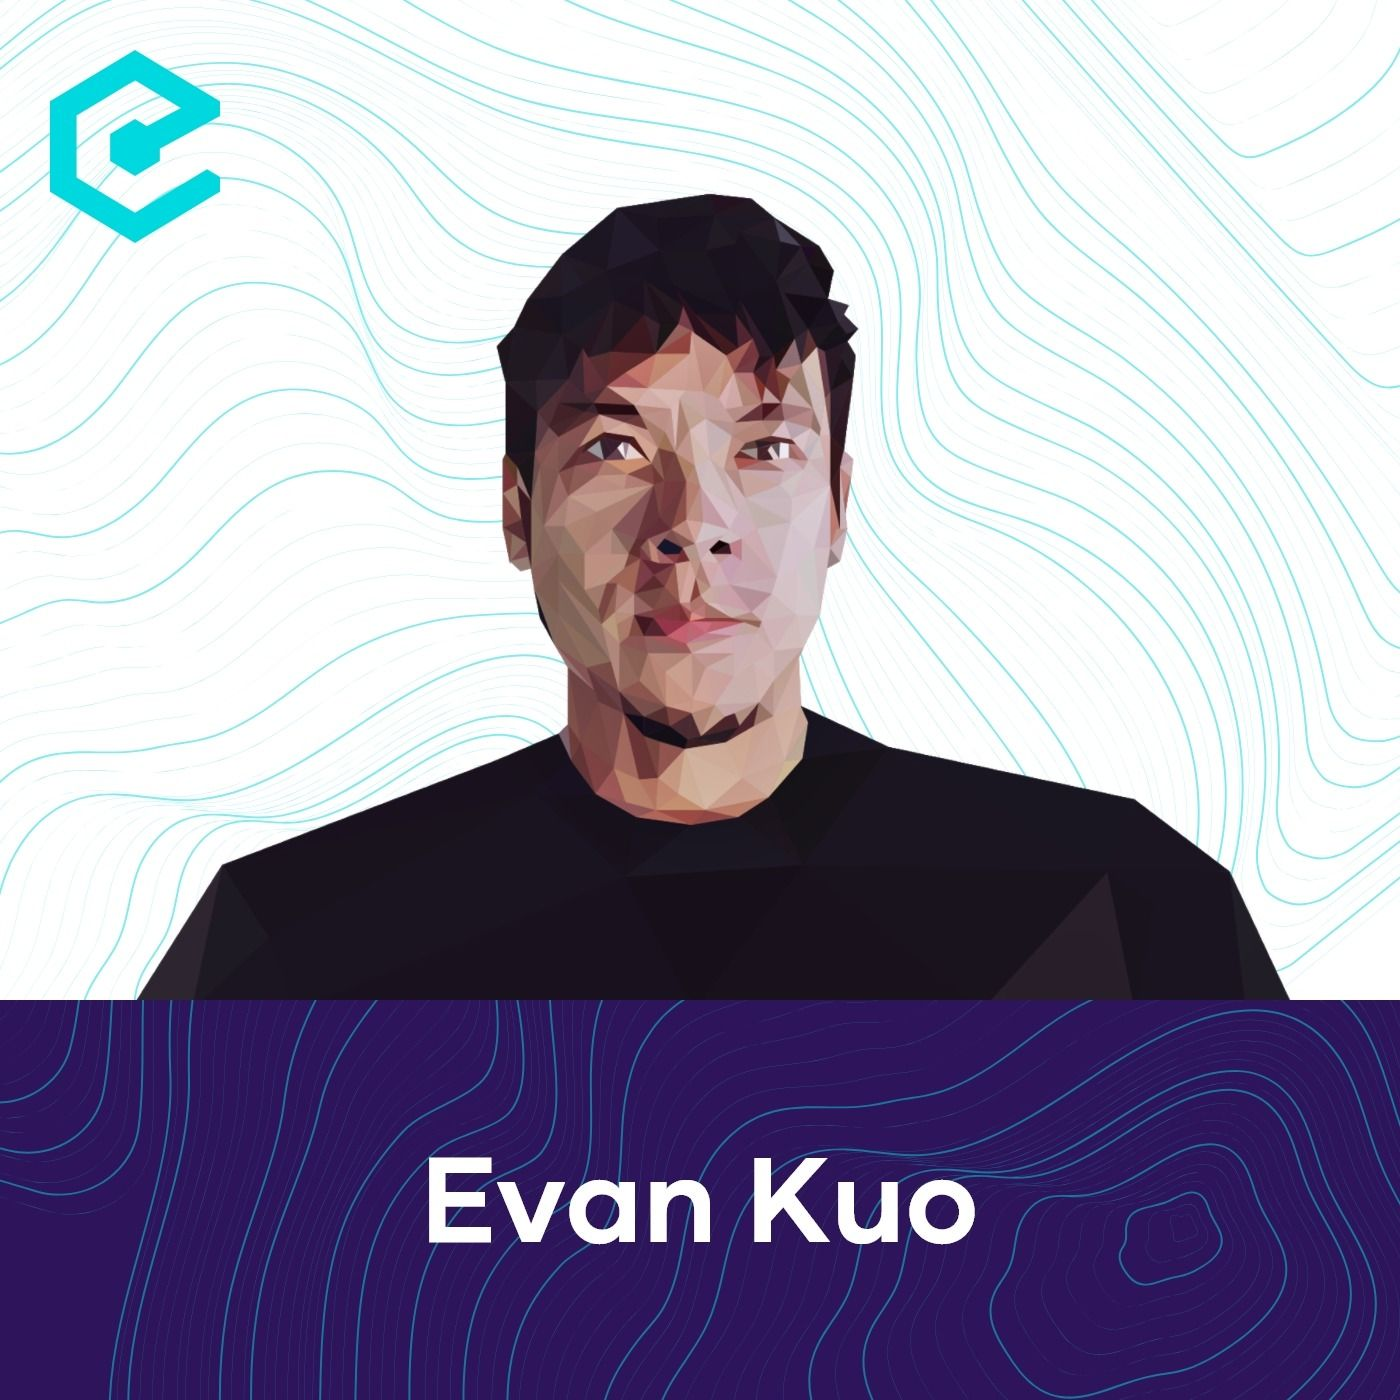 Evan Kuo: AMPL - the Controversial Digital Currency With an Elastic Supply